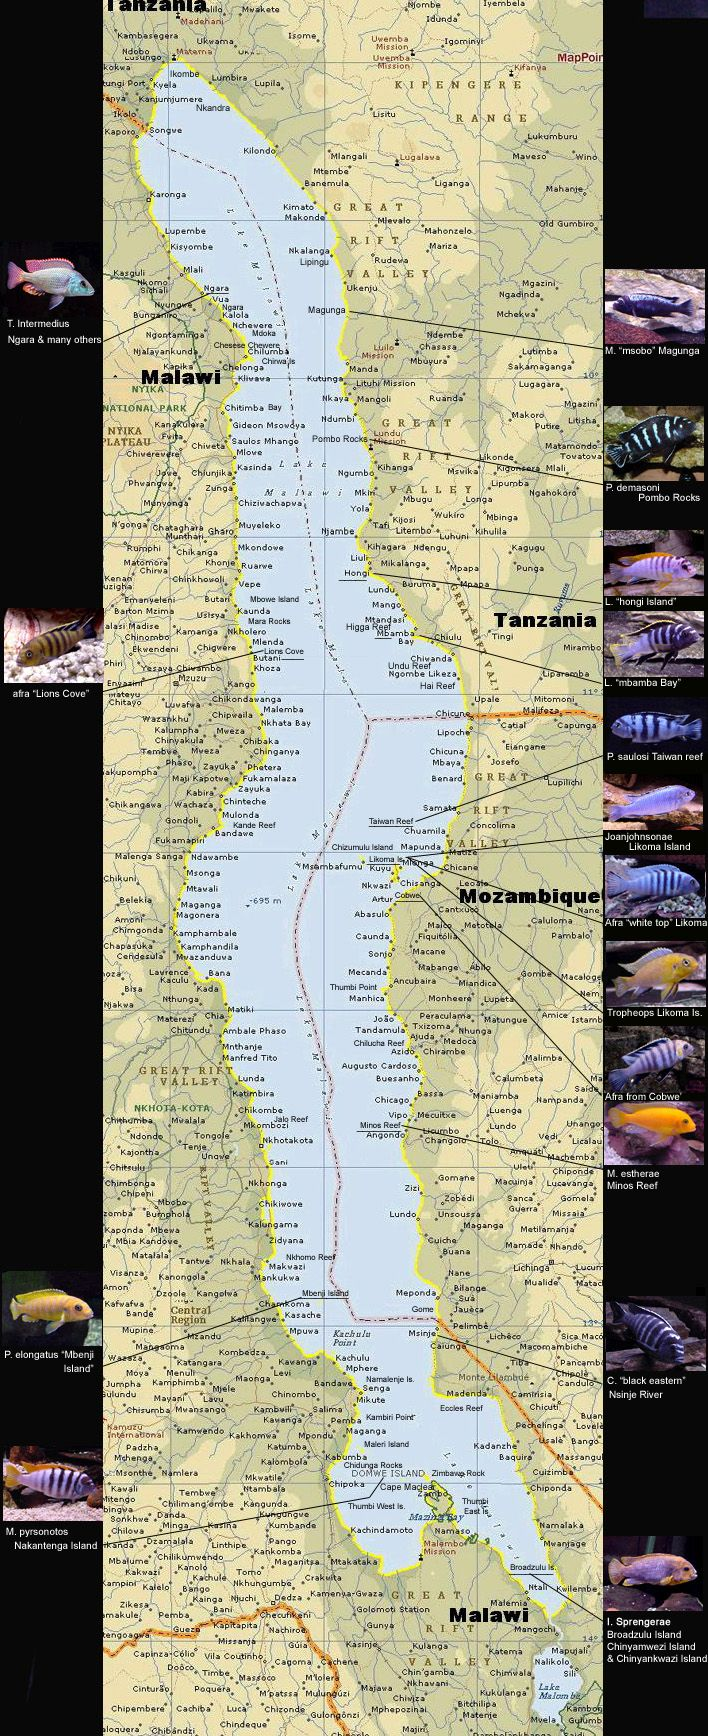 My Victorian Cichlids Lake Victoria Map & Links My Malawi Cichlids My Riverine Cichlids My Current Stocklist Spawning Home